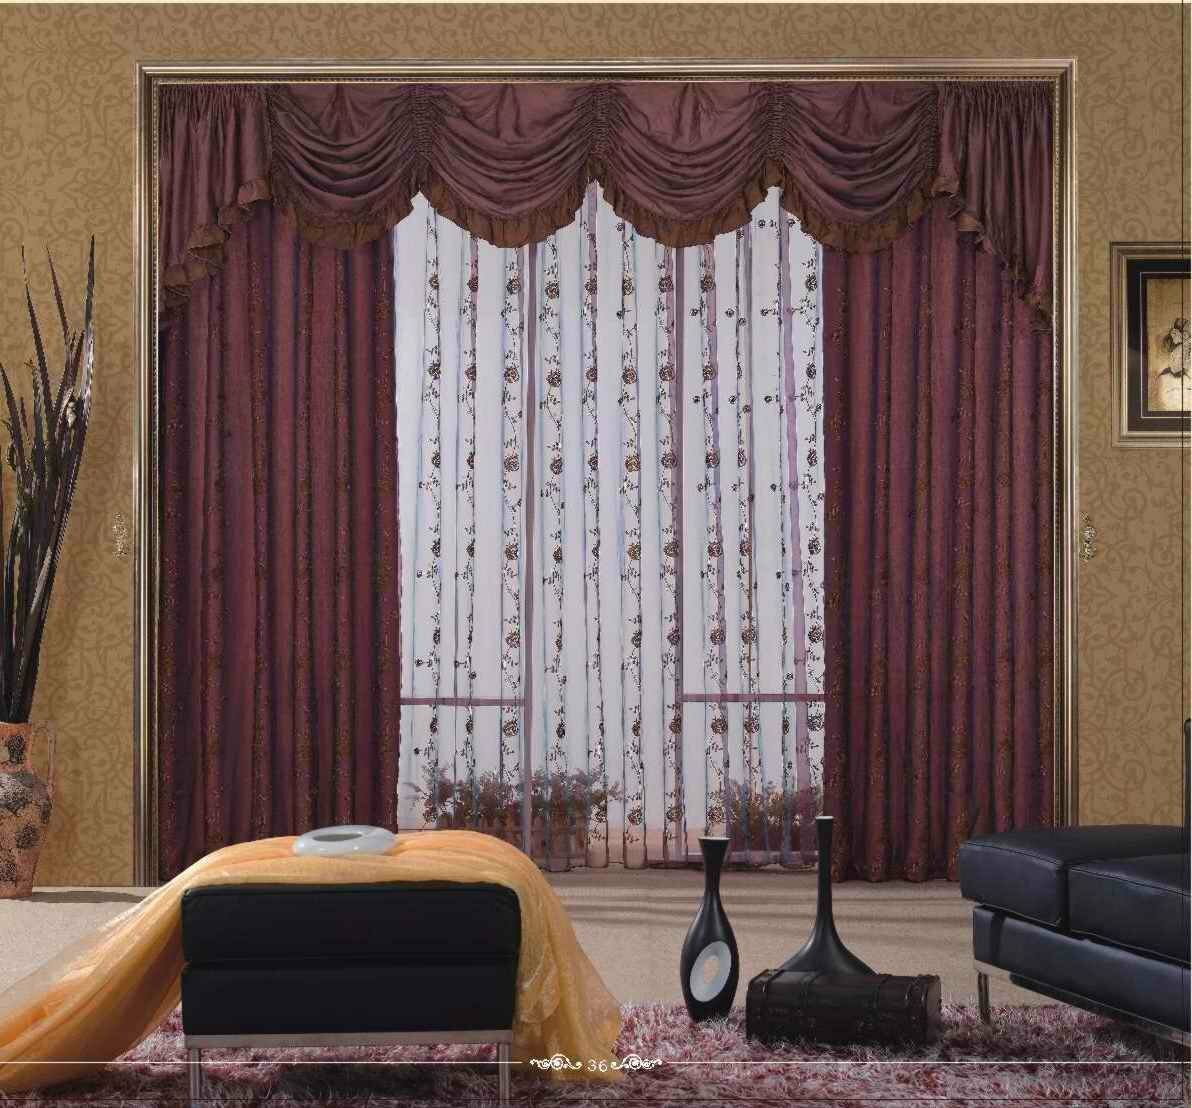 Cute Living Room Valances for Your Home Decorating Ideas: Where To Buy Valances | Living Room Valances | Window Valance Curtains